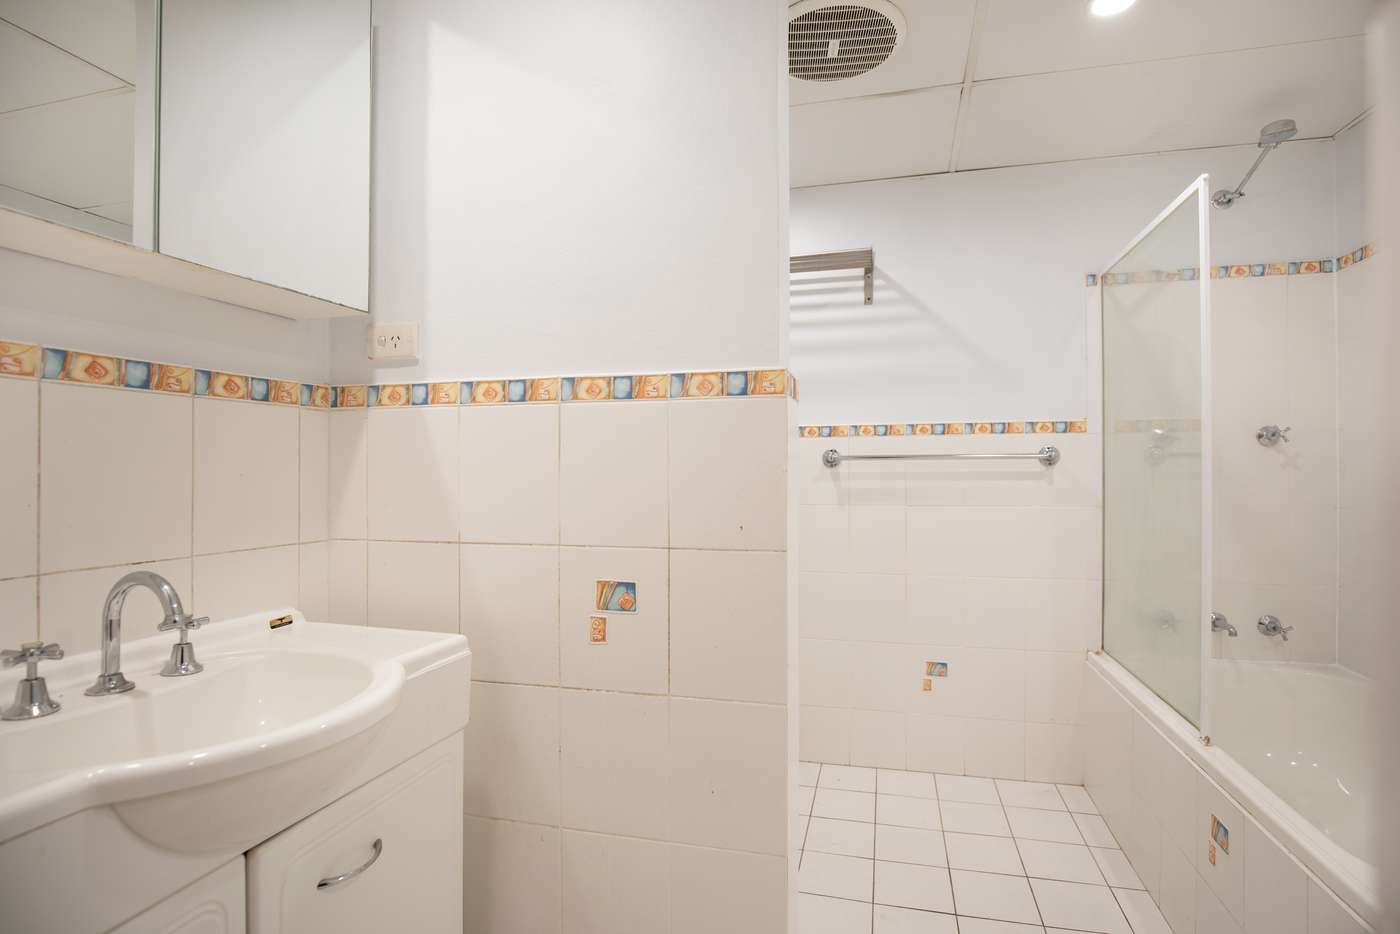 Seventh view of Homely apartment listing, 11/5-13 Hutchinson Street, Surry Hills NSW 2010